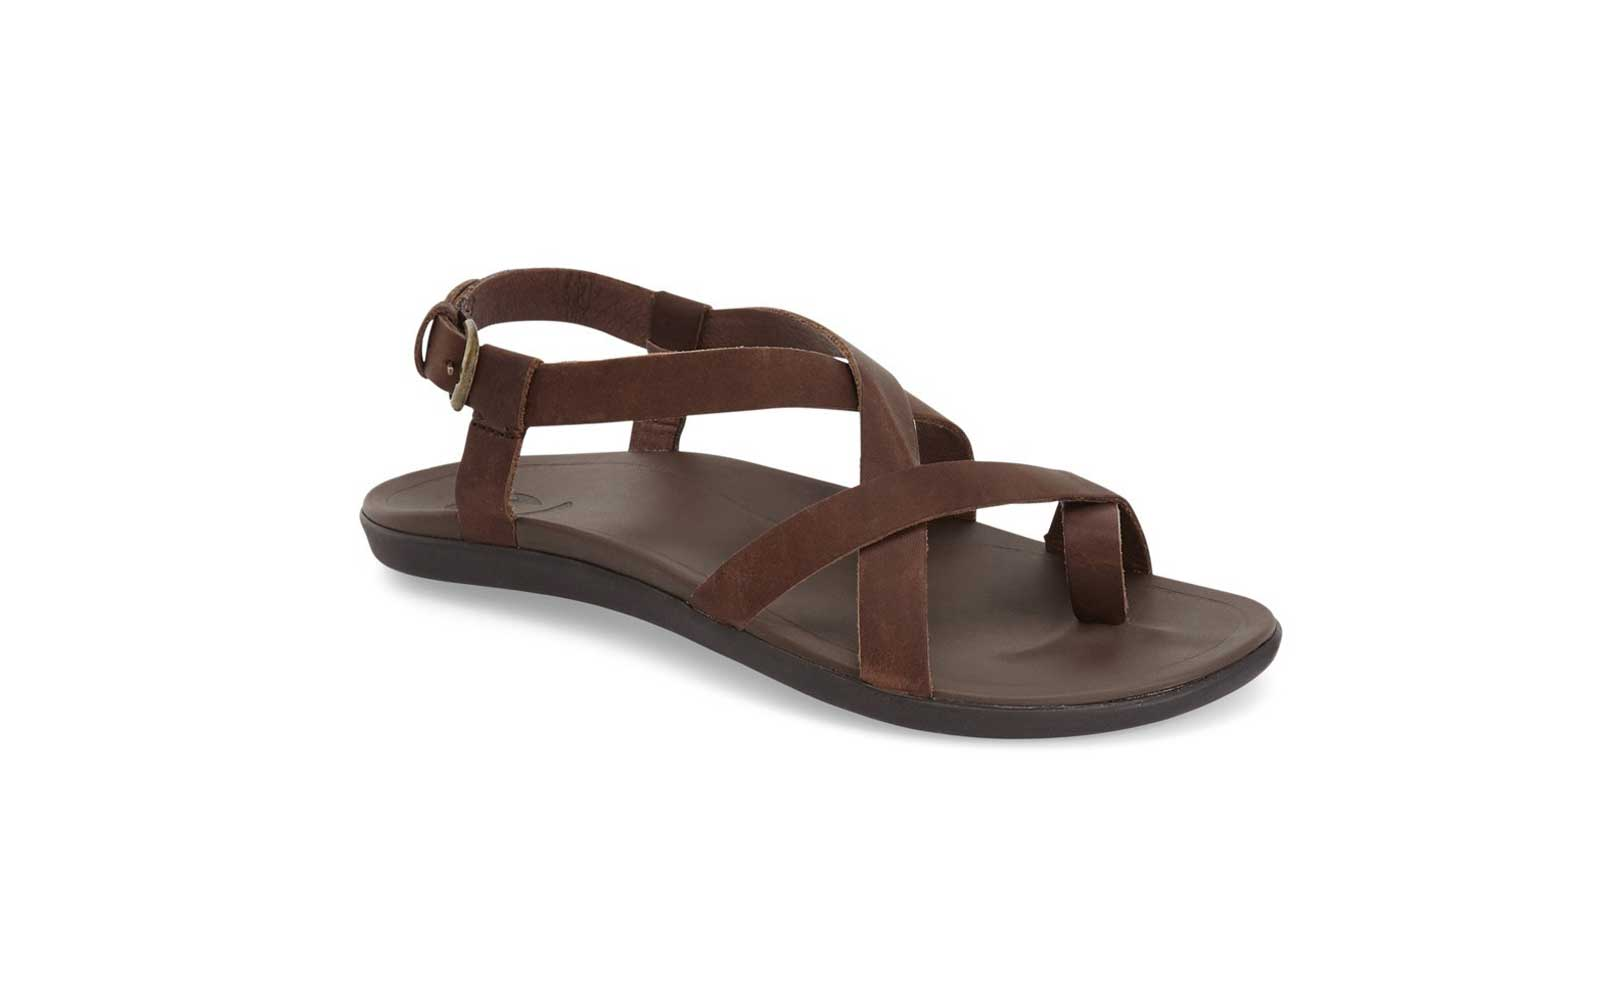 264251263087 The Most Comfortable Walking Sandals for Women